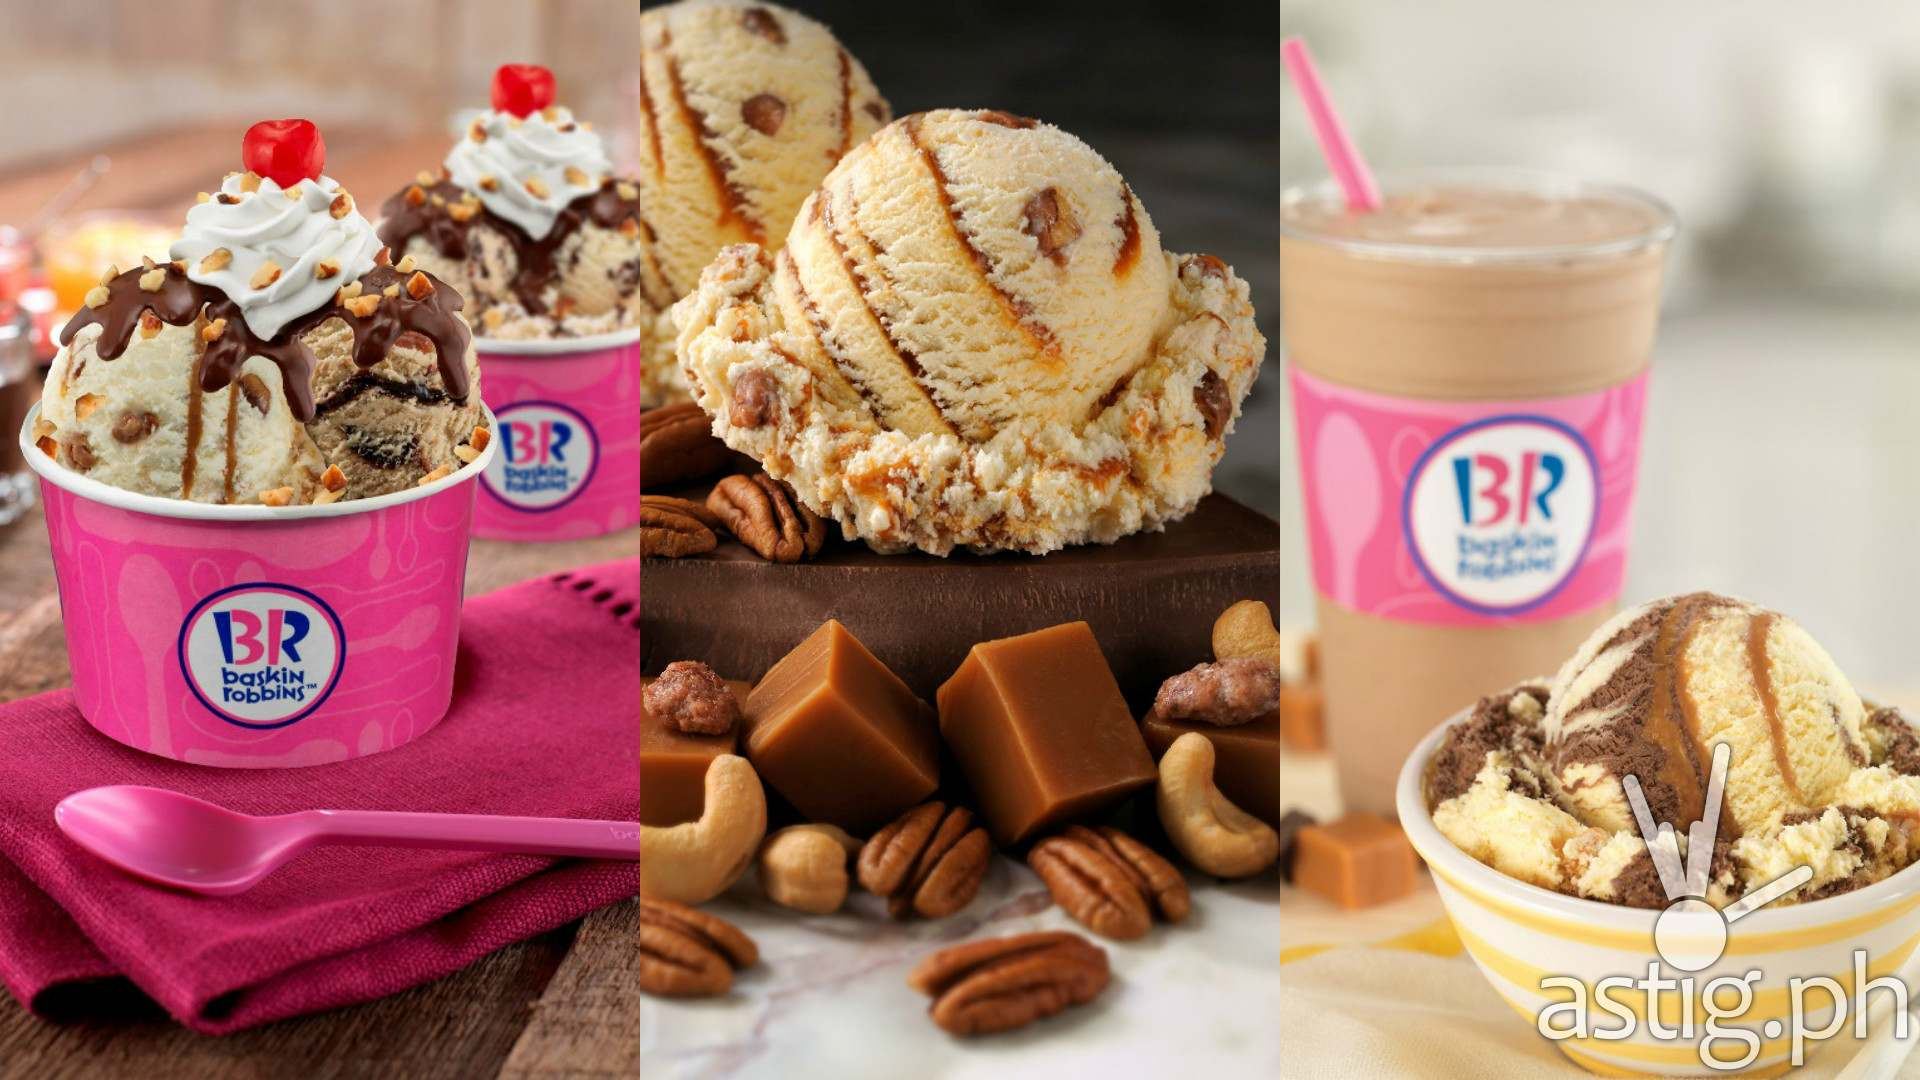 Baskin Robbins P31 scoops for everyone